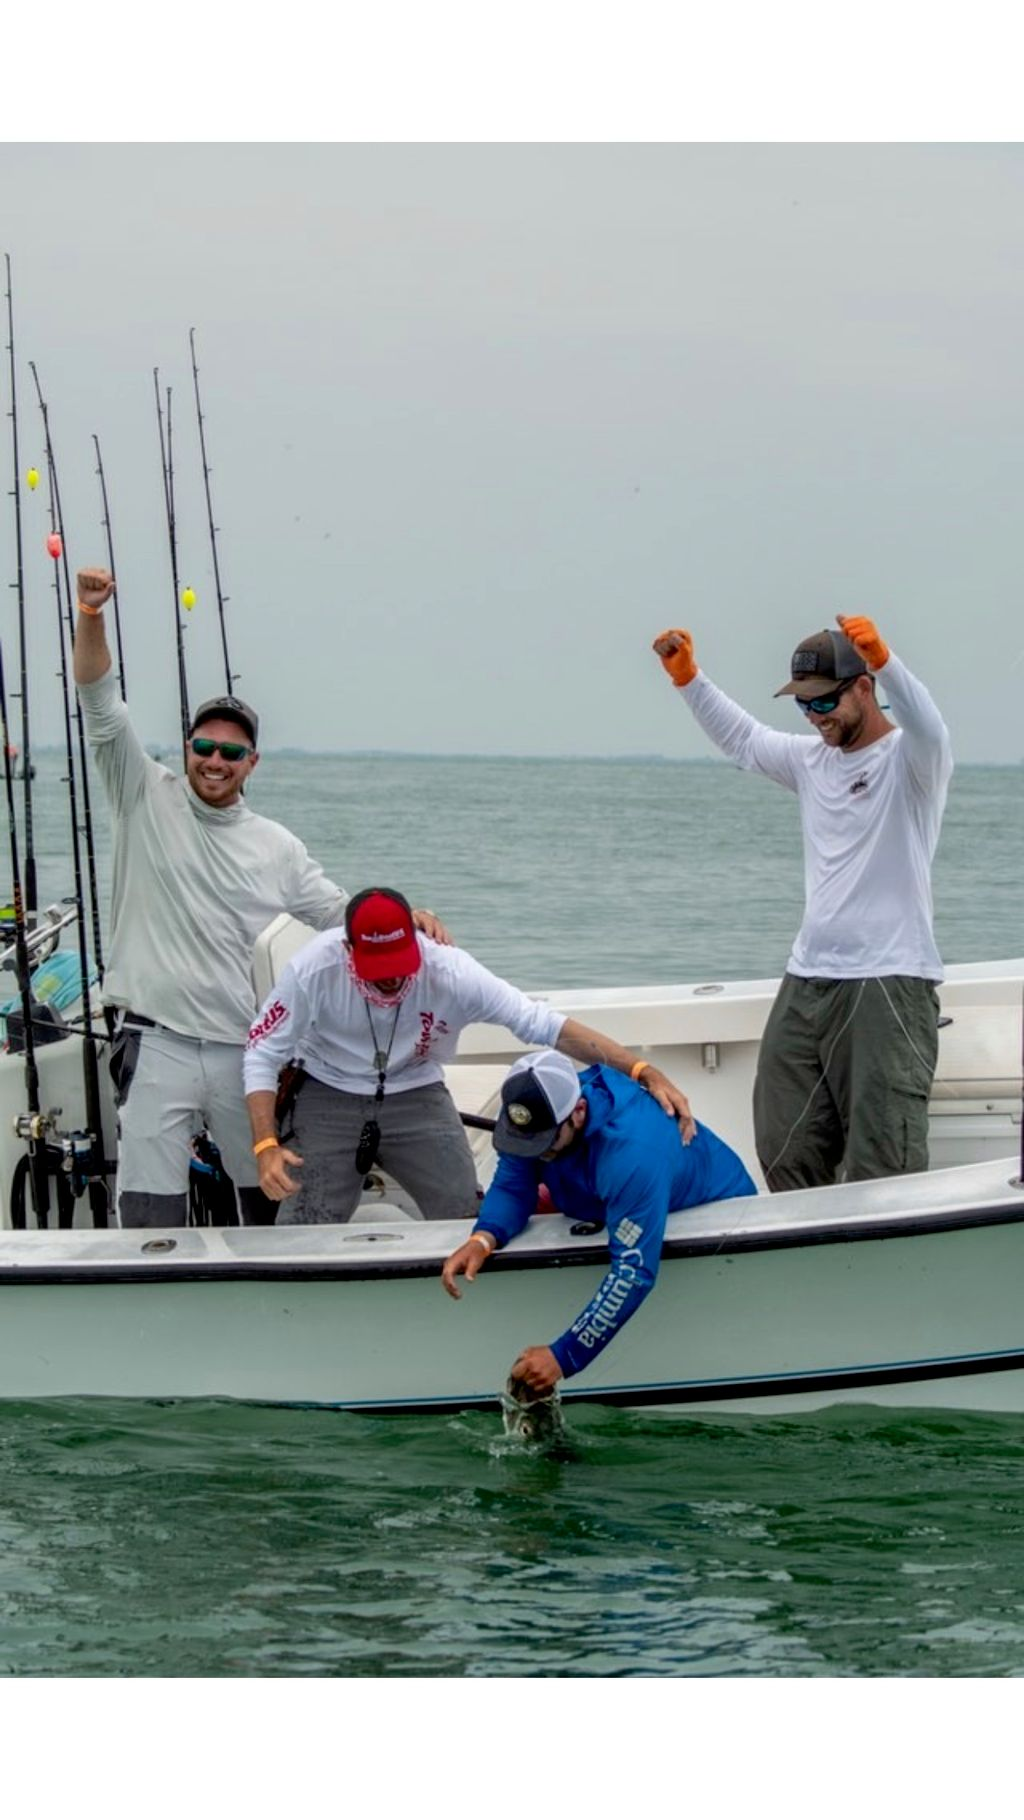 Trying for 2nd tarpon title this year